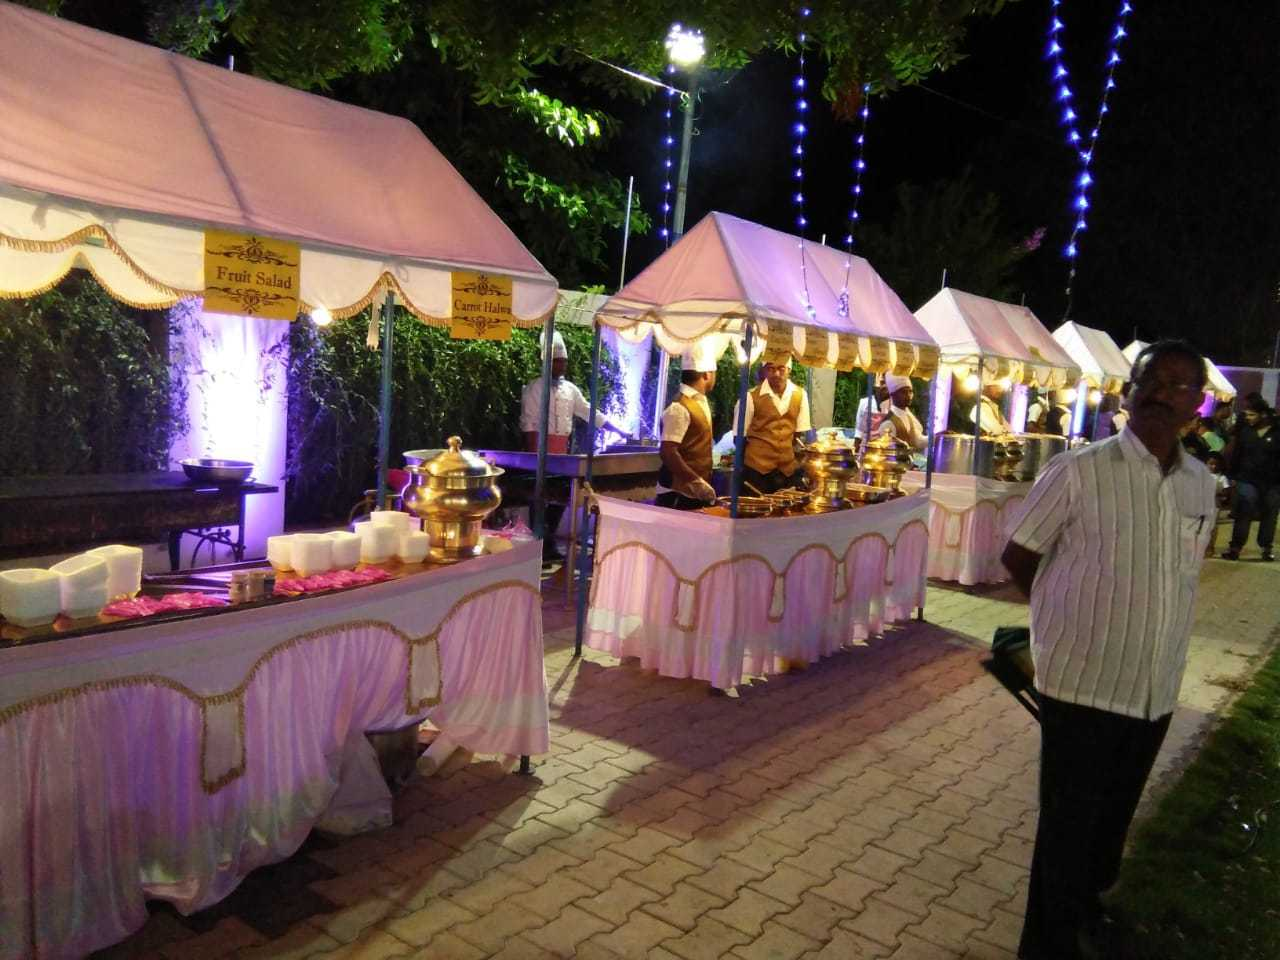 dhev catering and event management arulananada nagar thanjavur caterers kfcoe9ixeg - wedding planners west palm beach